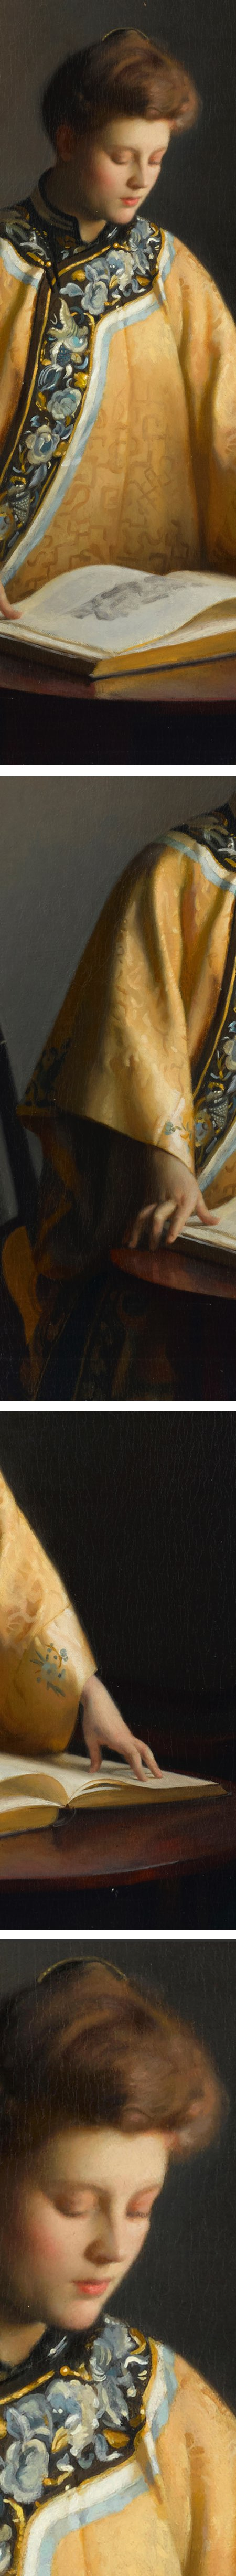 The Yellow Jacket, William McGregor Paxton, oil on canvas (details)